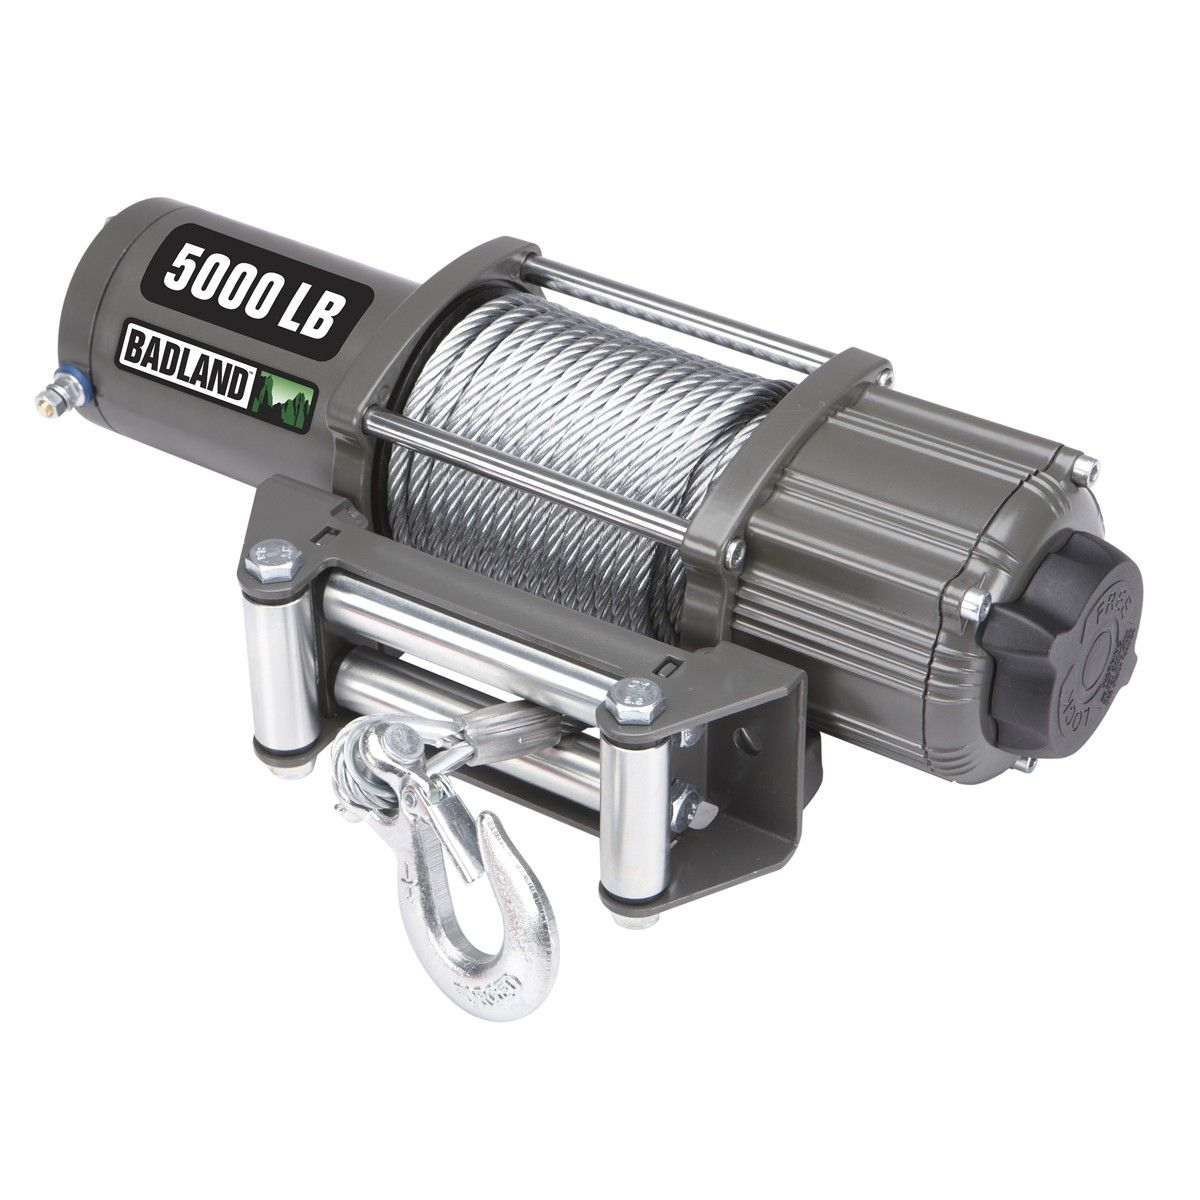 5000 Lbs  ATV/Utility Electric Winch with Automatic Load